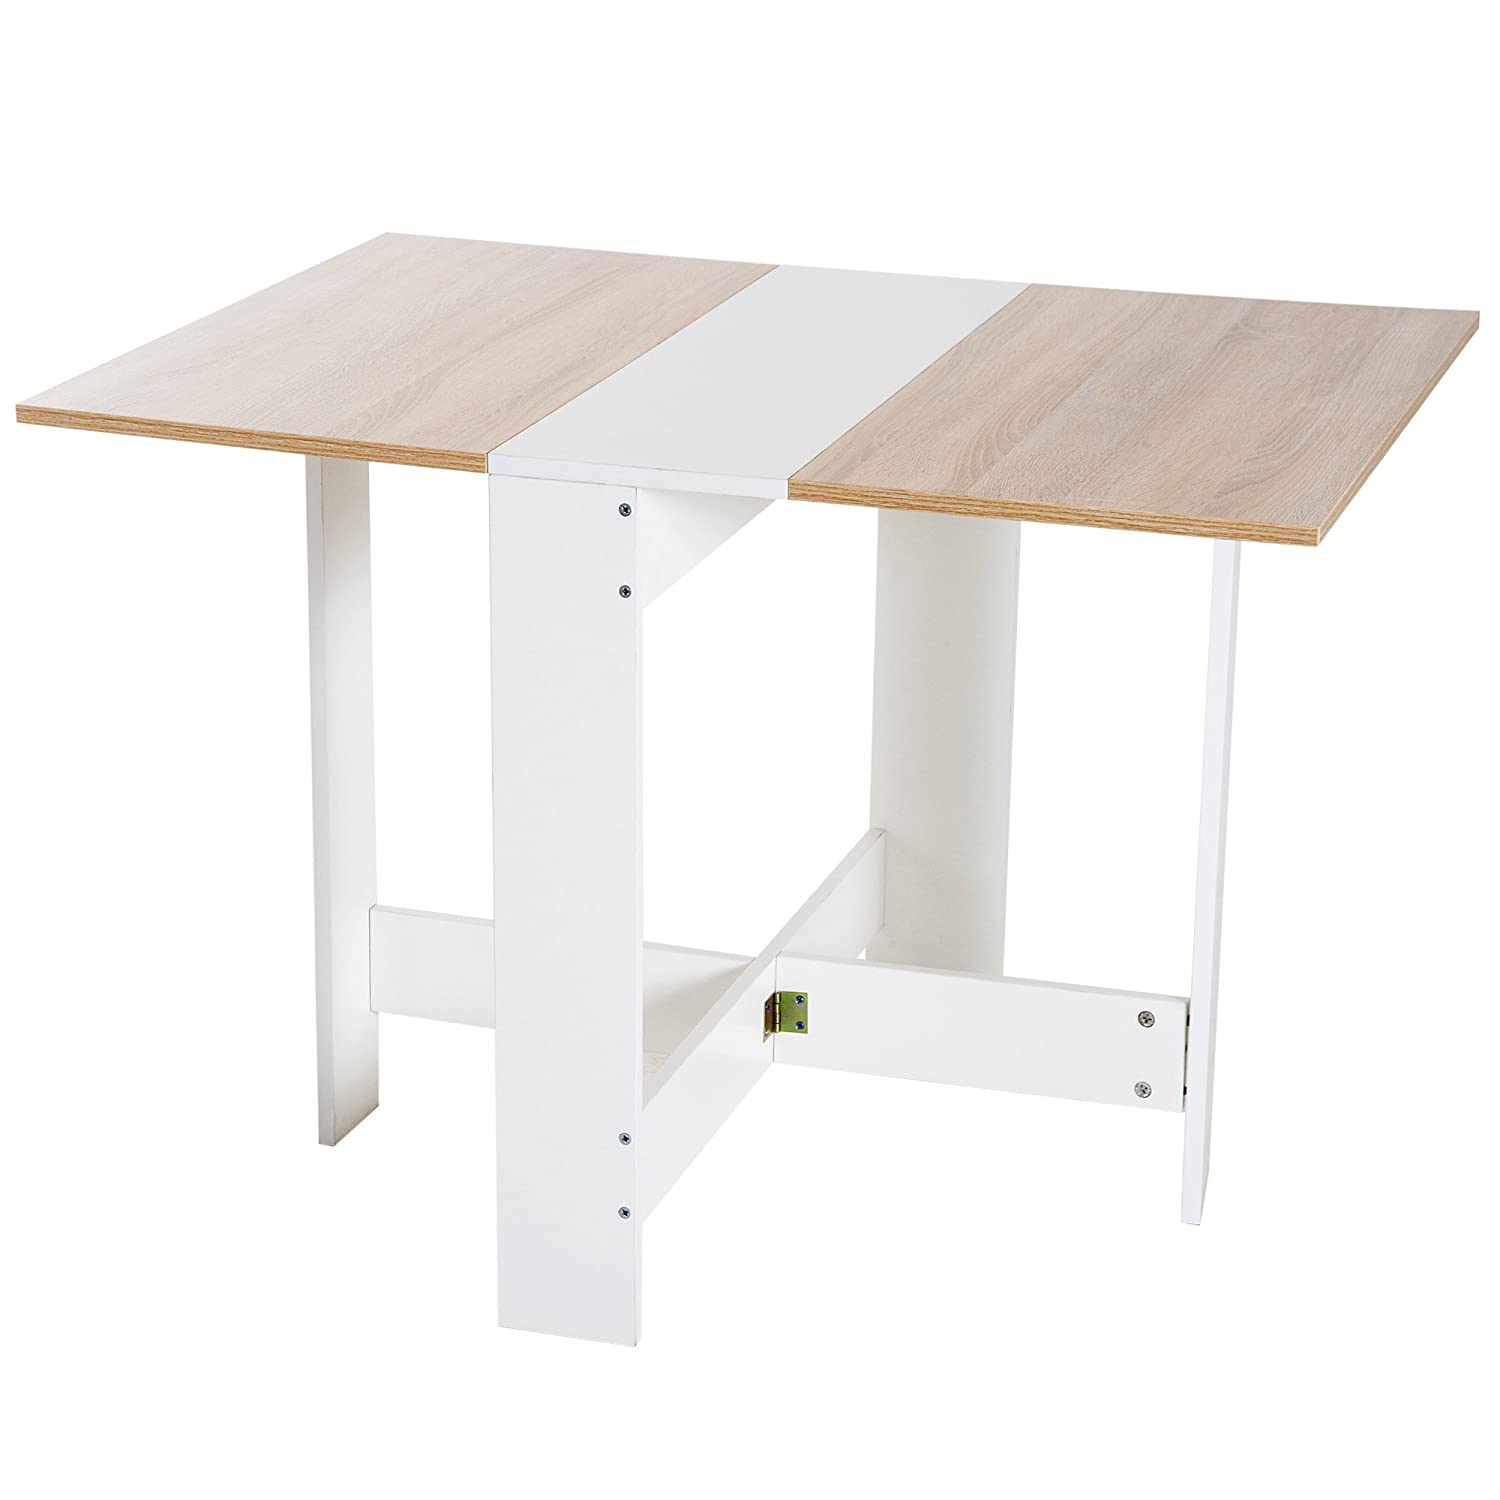 HOMCOM Drop Leaf Table Wood Folding Dining Table Multi-Use Side Table Dining Desk Space Saving Home Furniture White/Oak Aosom Canada